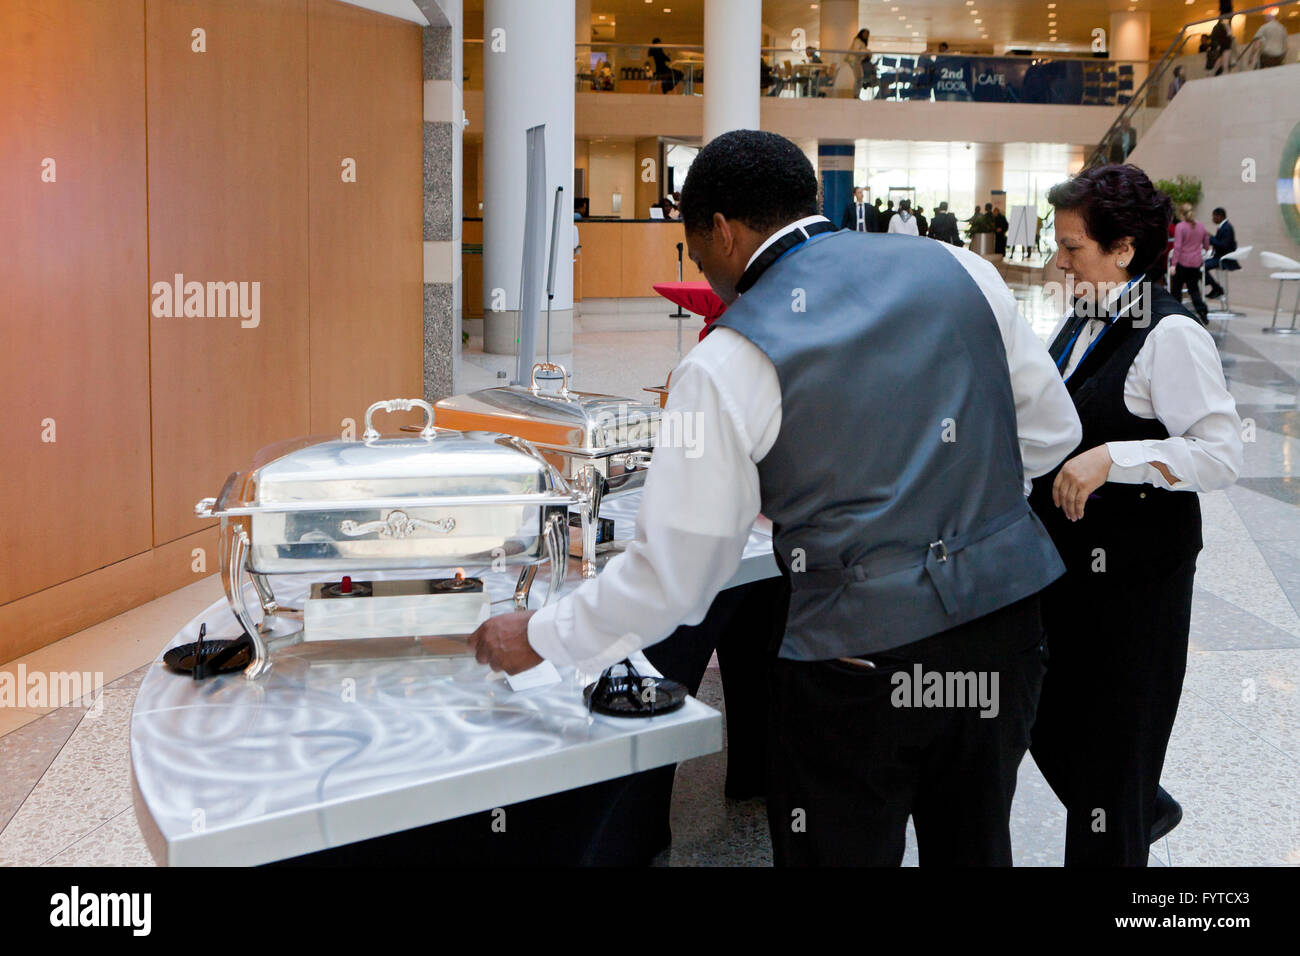 Lounge server preparing chafers of food for guests - USA - Stock Image